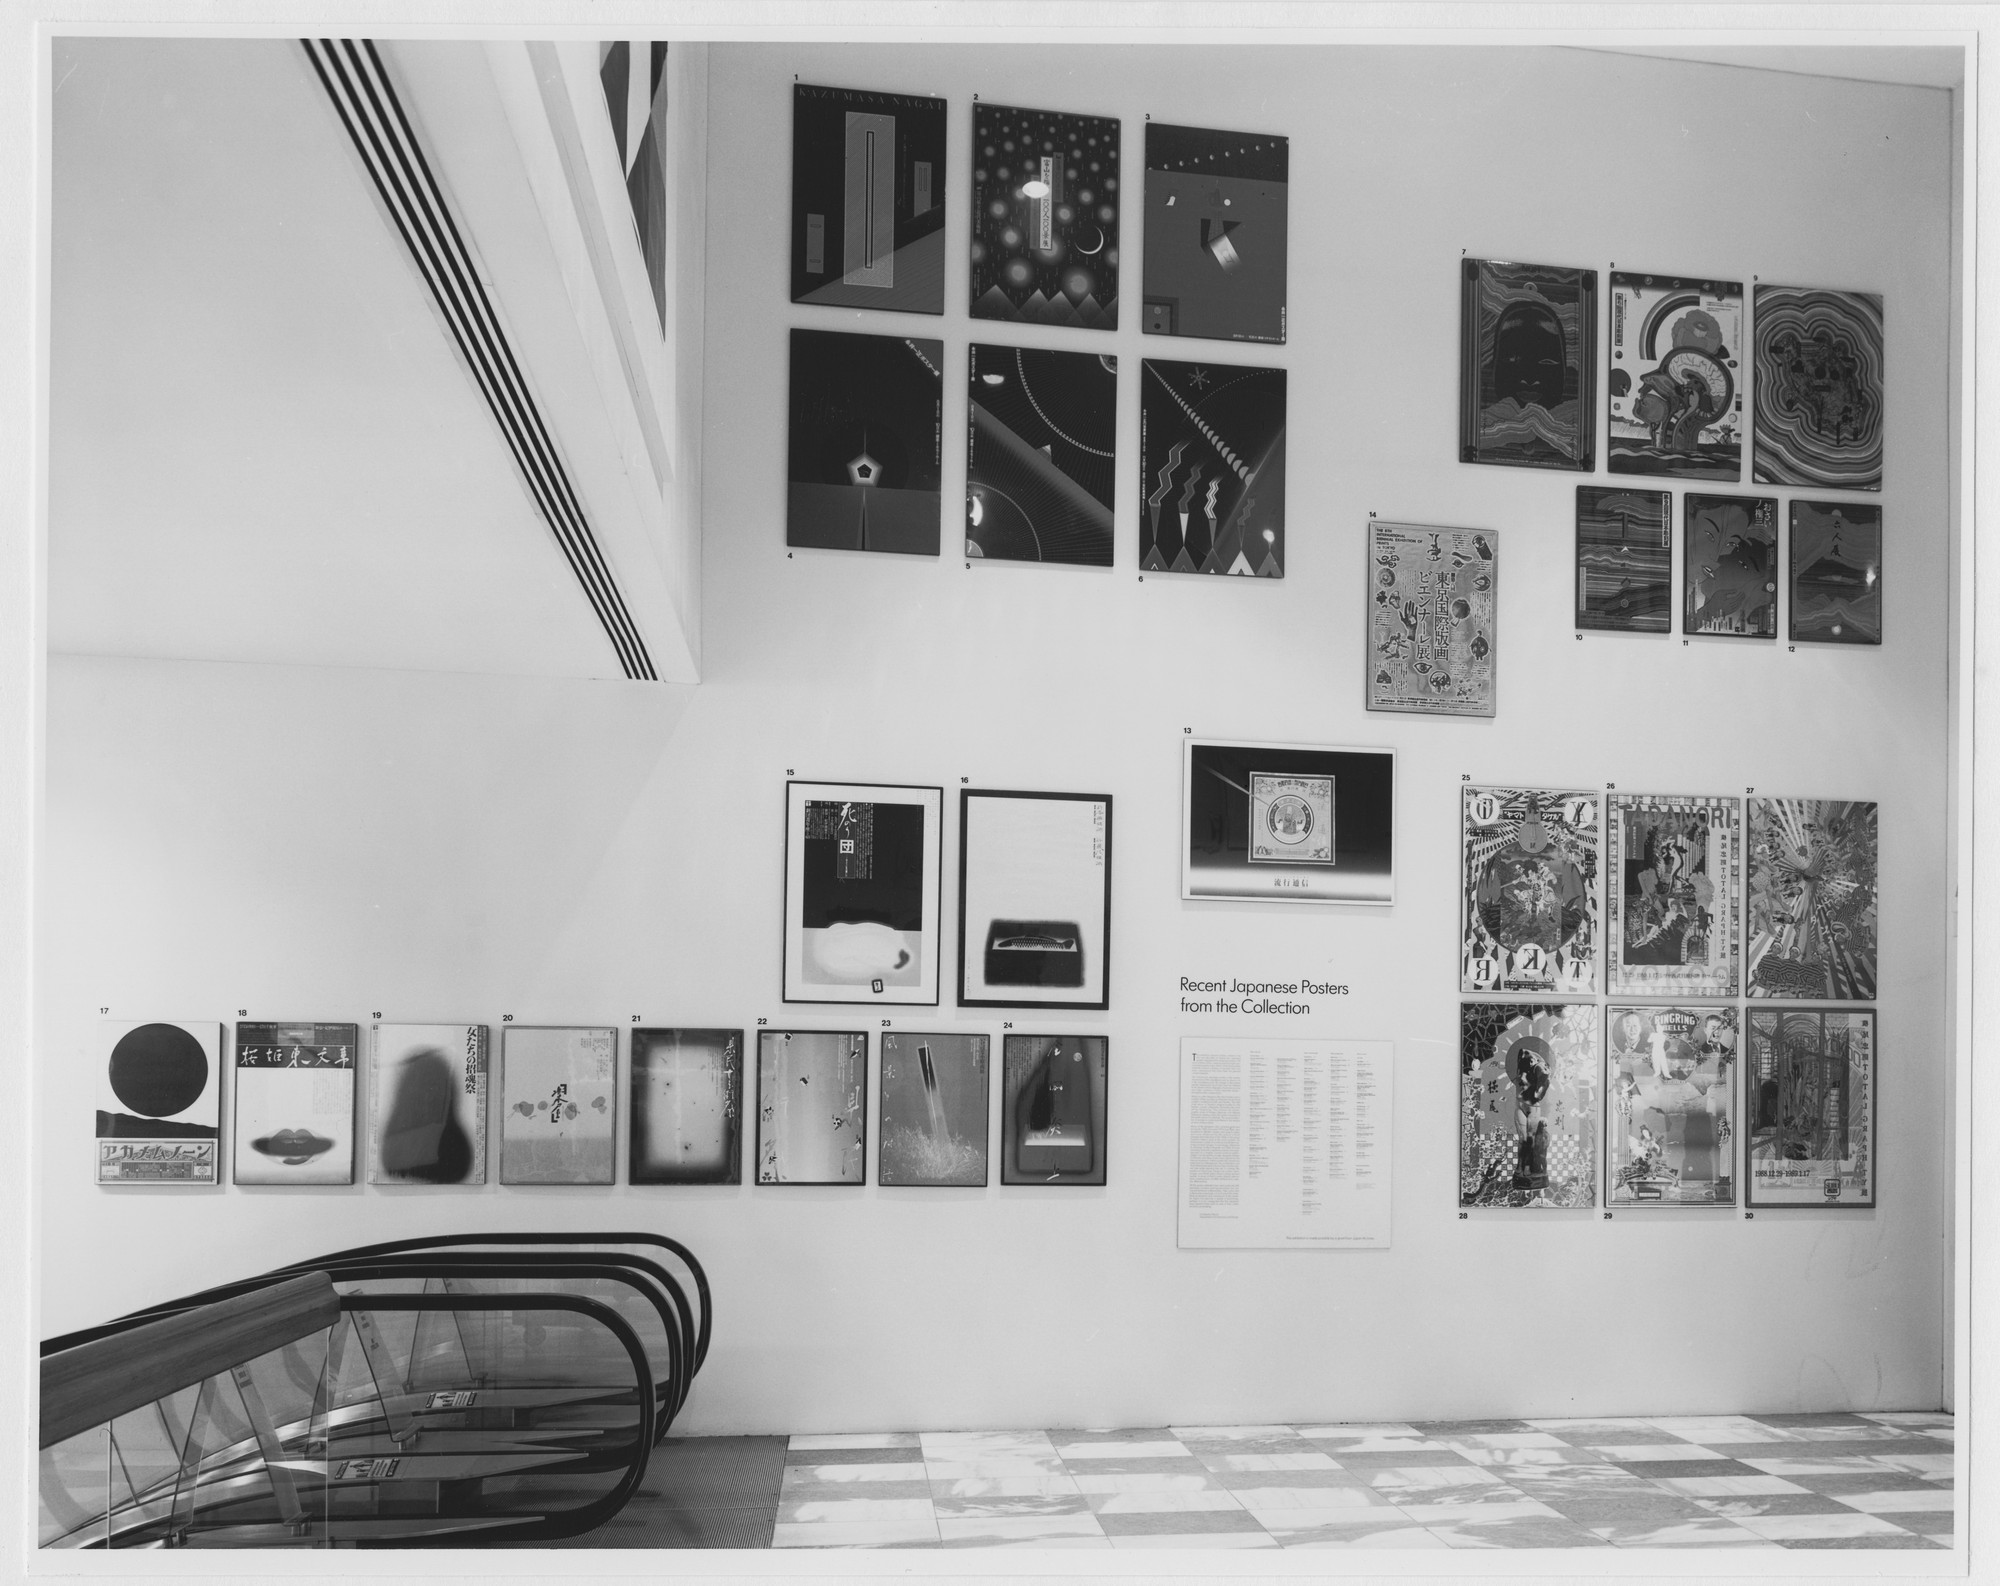 "Installation view of the exhibition, ""Recent Japanese Posters from the Collection"" December 9, 1989–April 16, 1990. Photographic Archive. The Museum of Modern Art Archives, New York. IN1536.1. Photograph by Katherine Keller."